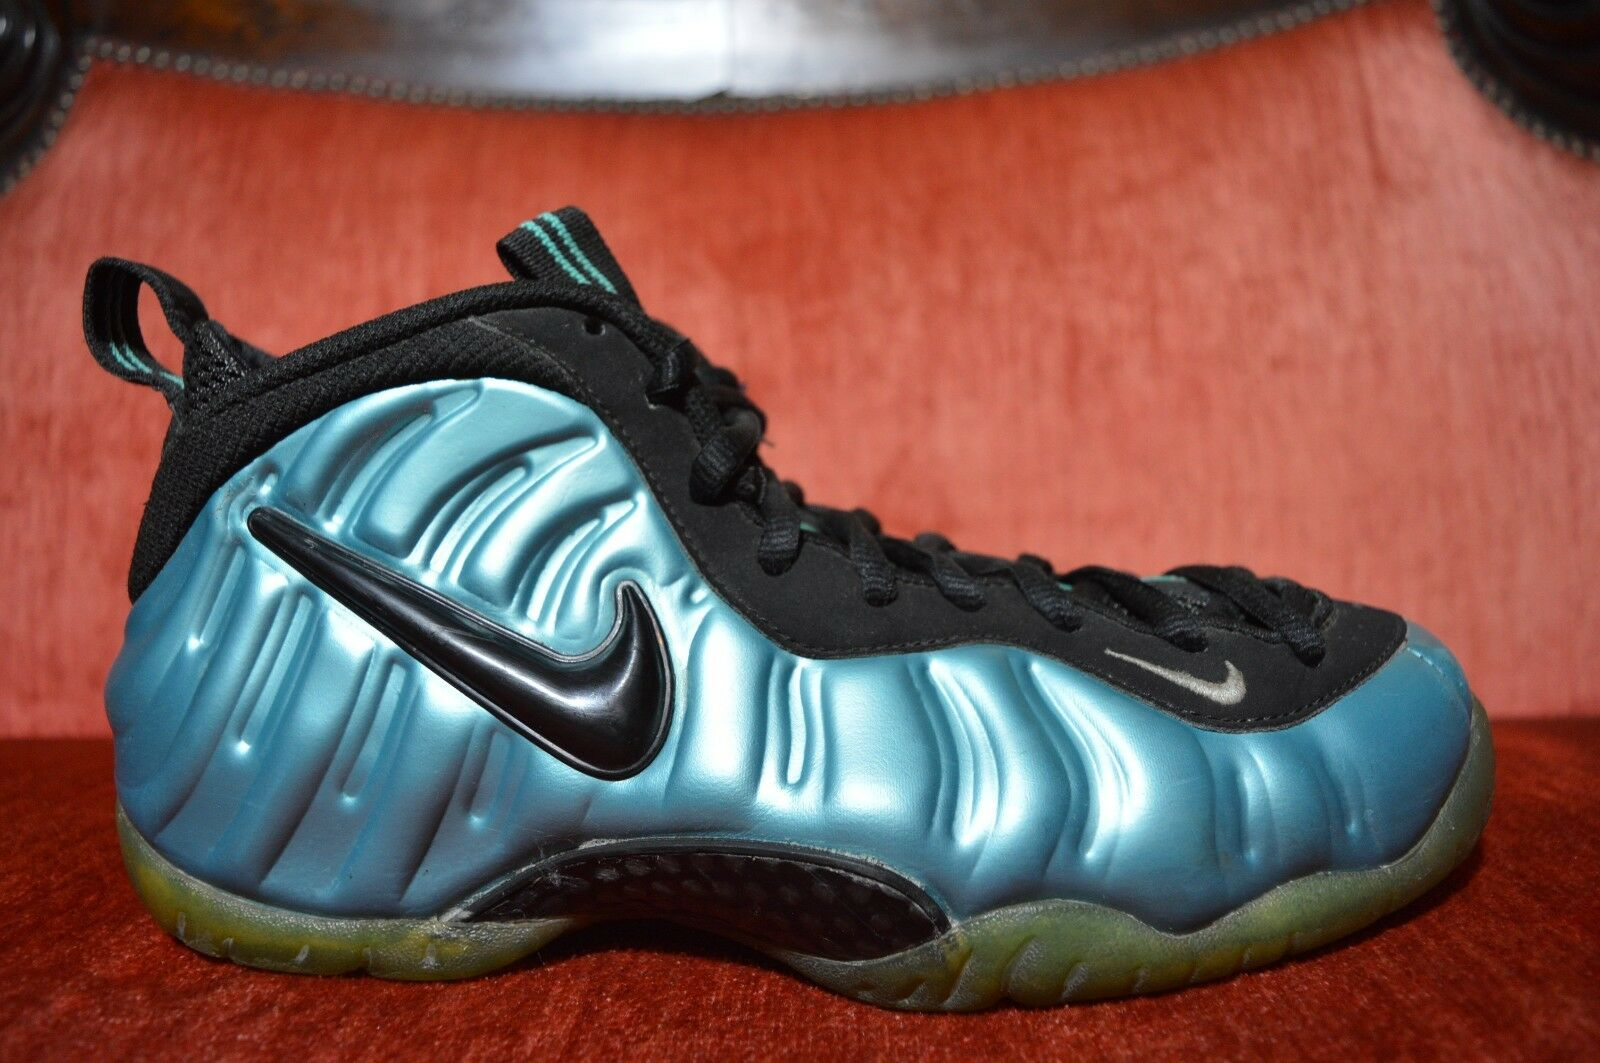 Nike Air Foamposite Pro Retro/Black-White Electric Blue 2011 624041-410 Size 8